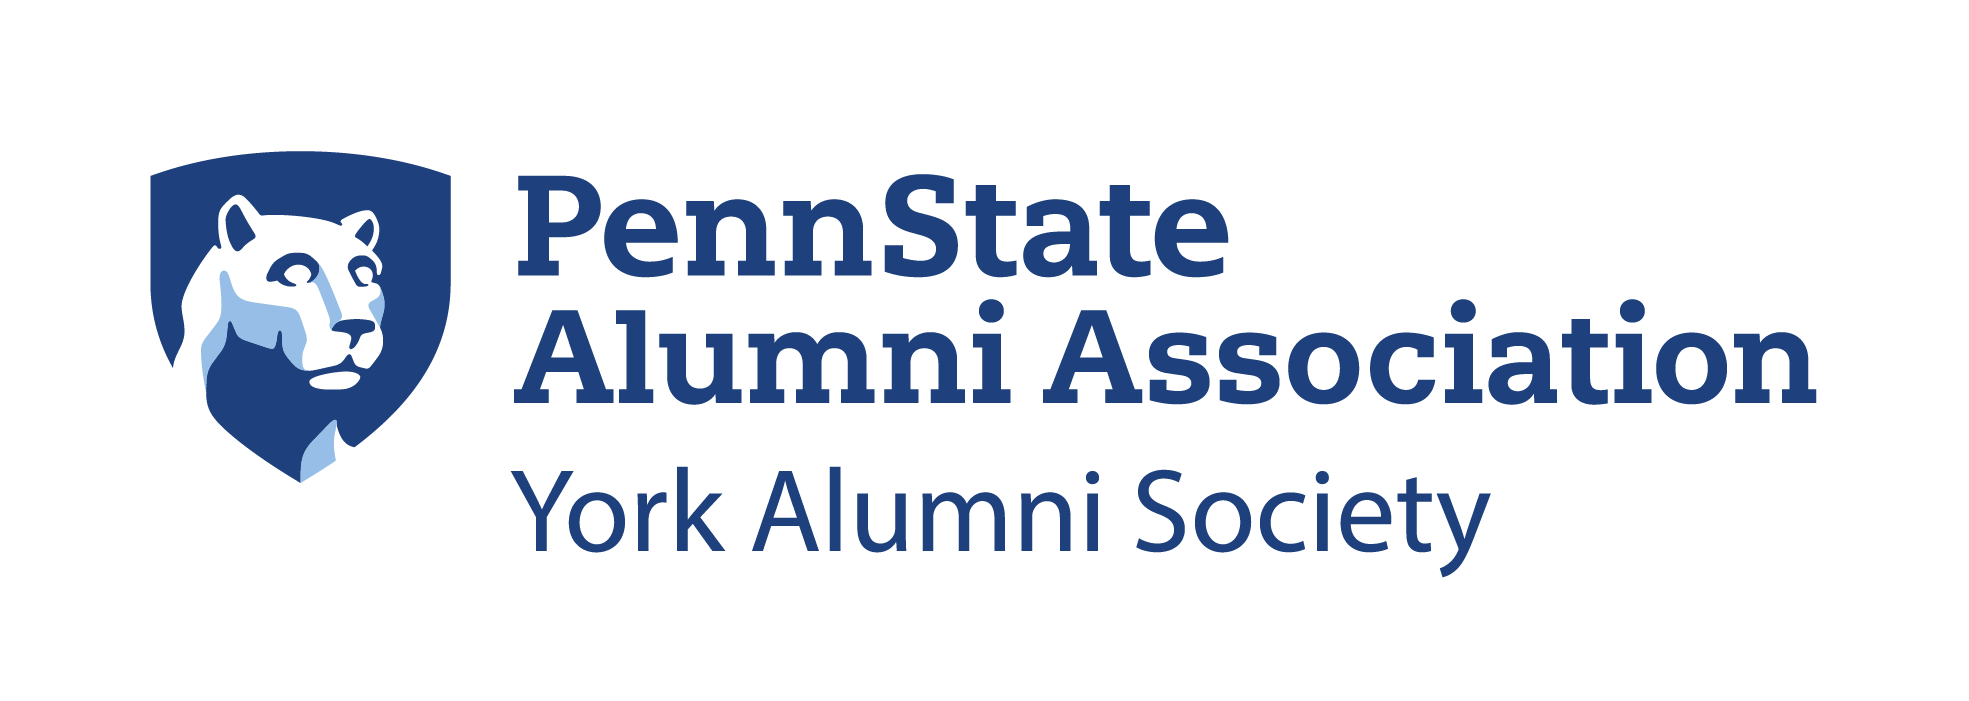 York Alumni Society